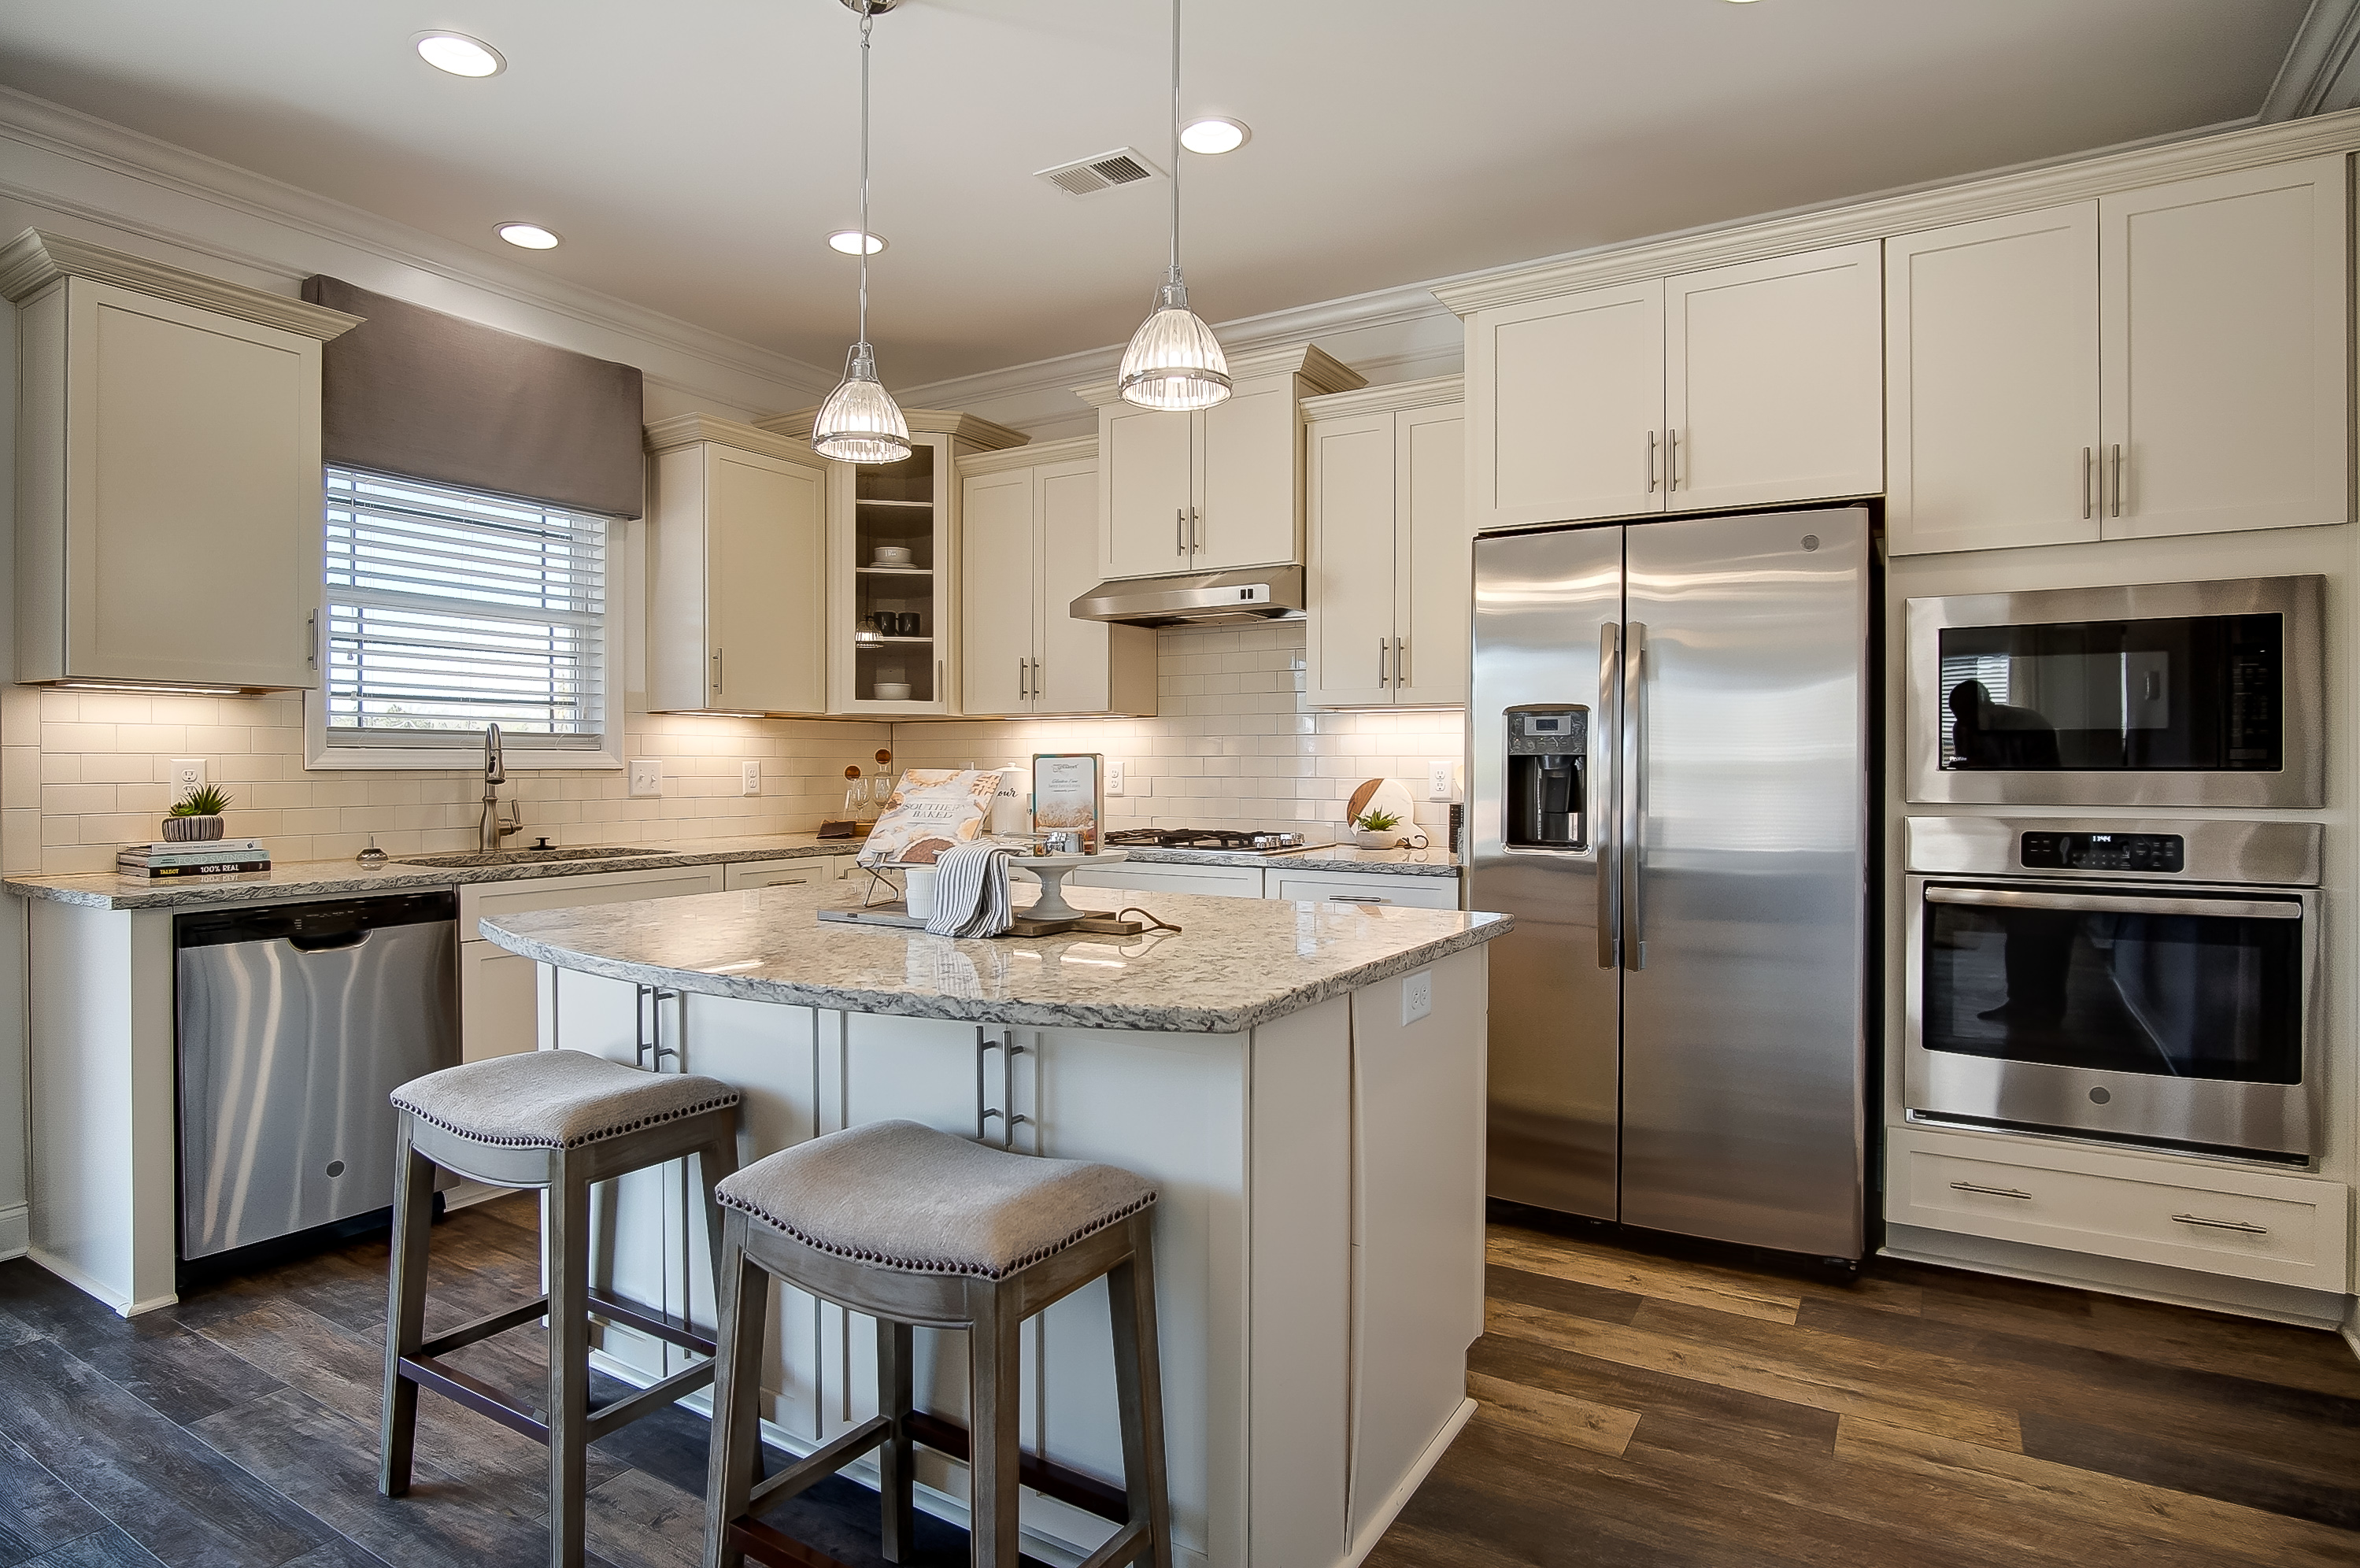 Kitchen Islands: Bar Height or Counter Height? | Eastwood Homes